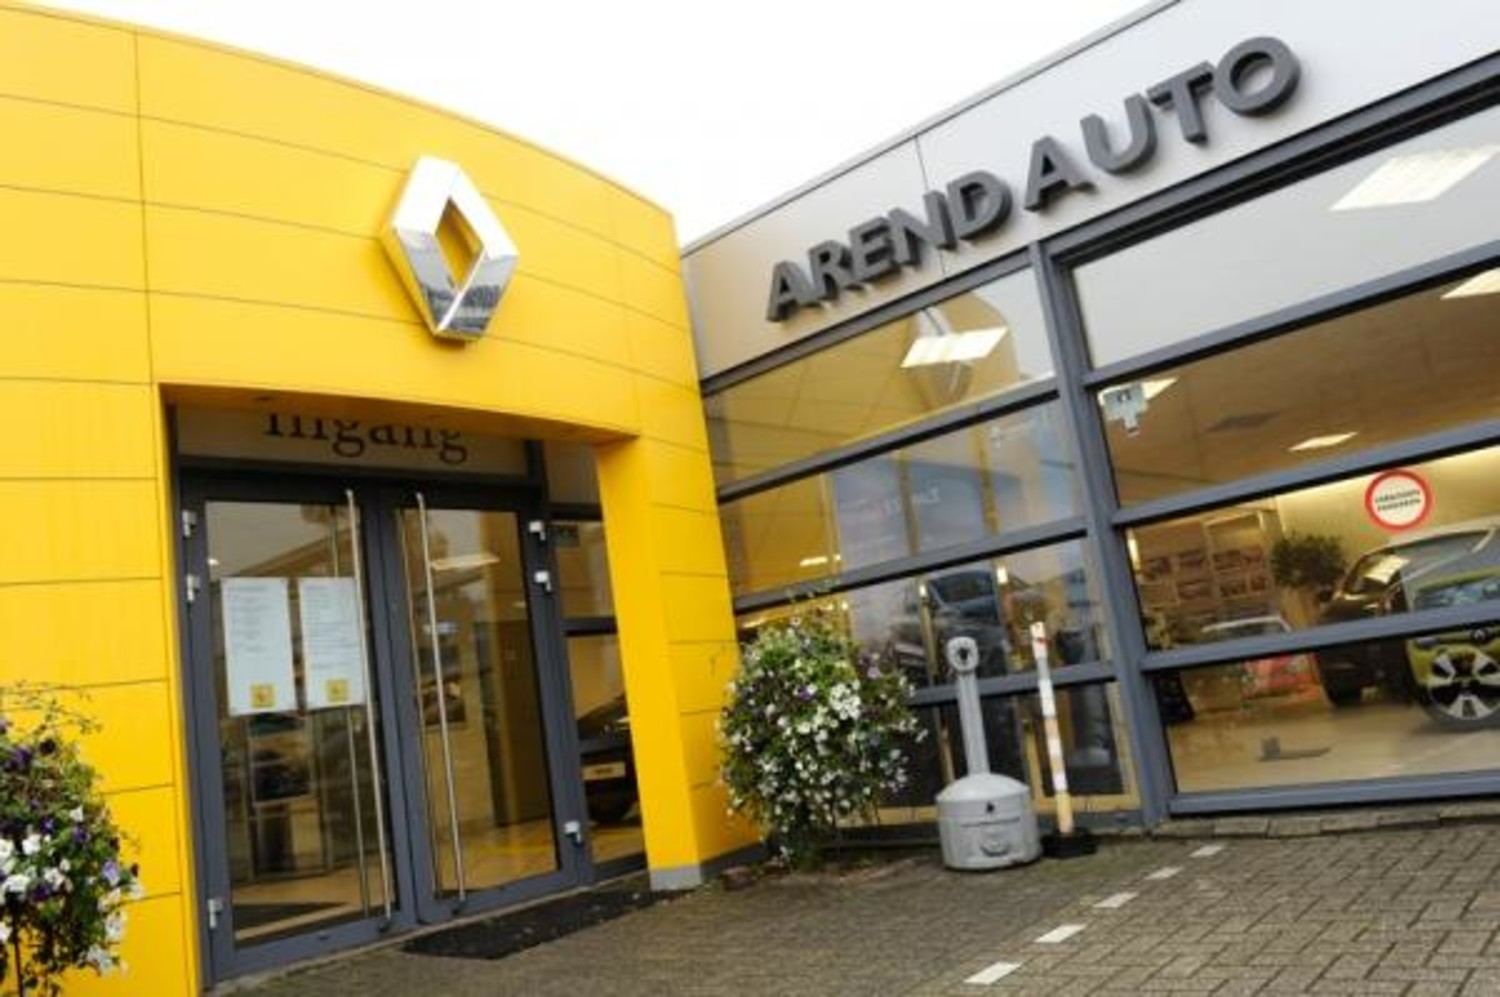 Arend auto Renault - Foto 3